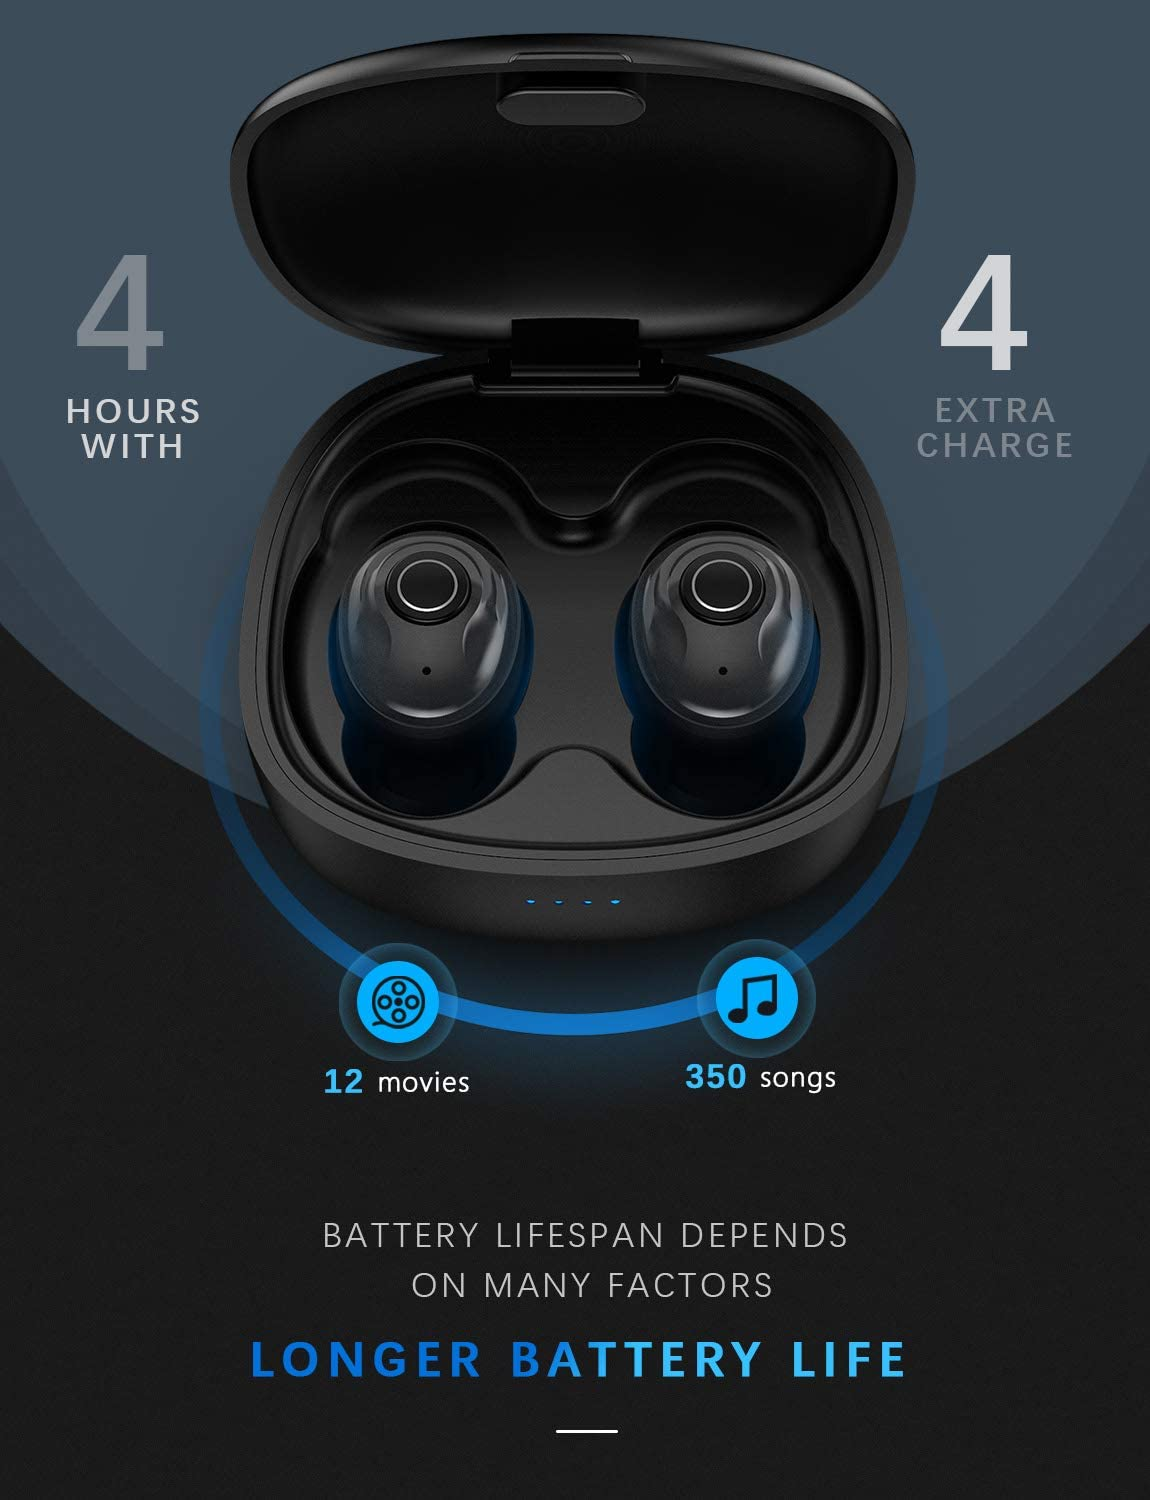 One Bud at a Time Wireless Earbuds Bluetooth 5.0 Dual Mic IPX8 Waterproof PeohZarr Wireless Earbuds Bluetooth Earbuds with Newest 4D HiFi Sound Graphene-Enhanced and Double Moving Coil Driver